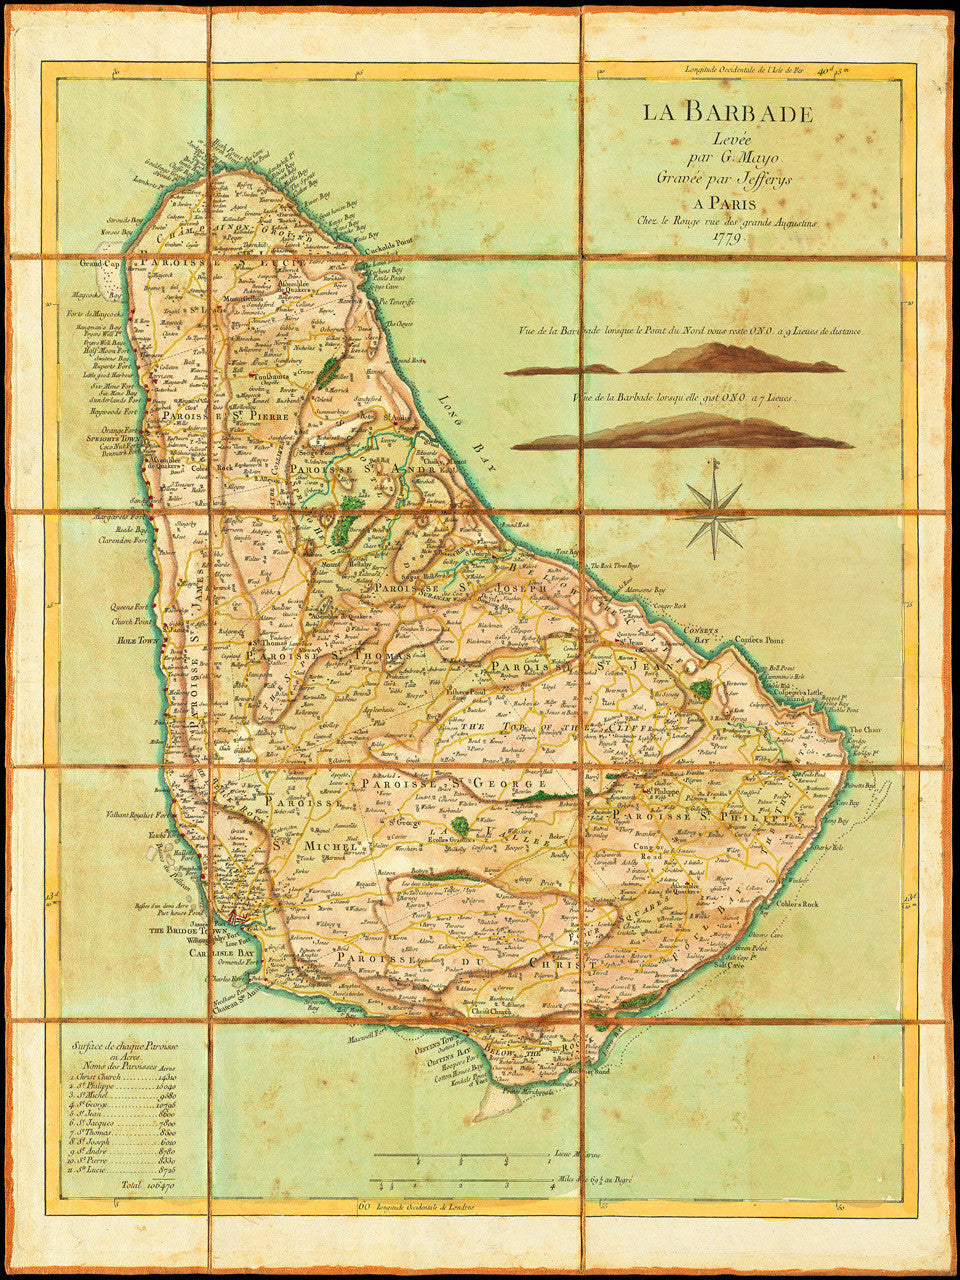 Map of barbados 1779 la barbade mayo jefferys le rouge caribbean 1779 barbados la barbade old map sciox Image collections